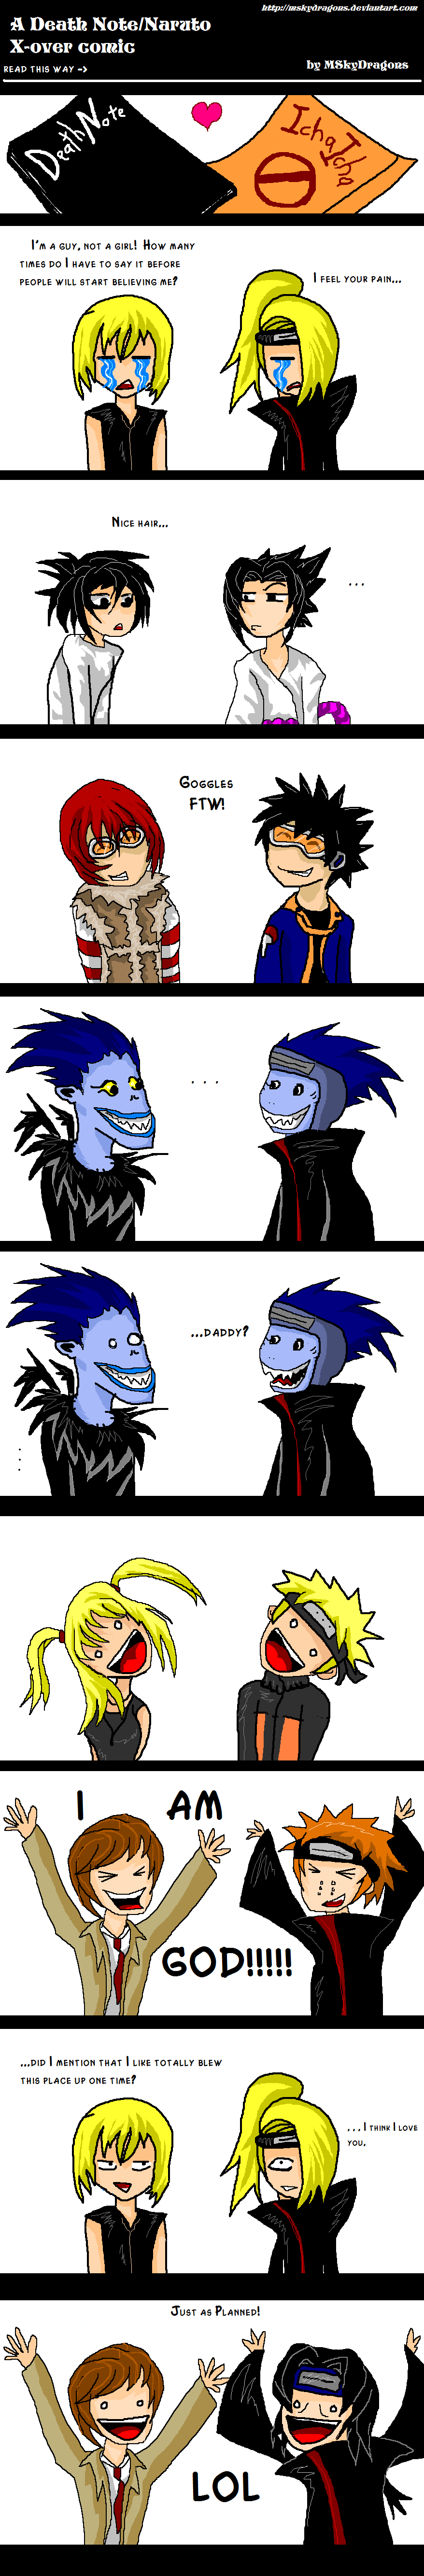 Internet Lulz Continued - Page 3 Naruto___Death_Note_CrackComic_by_MSkyDragons